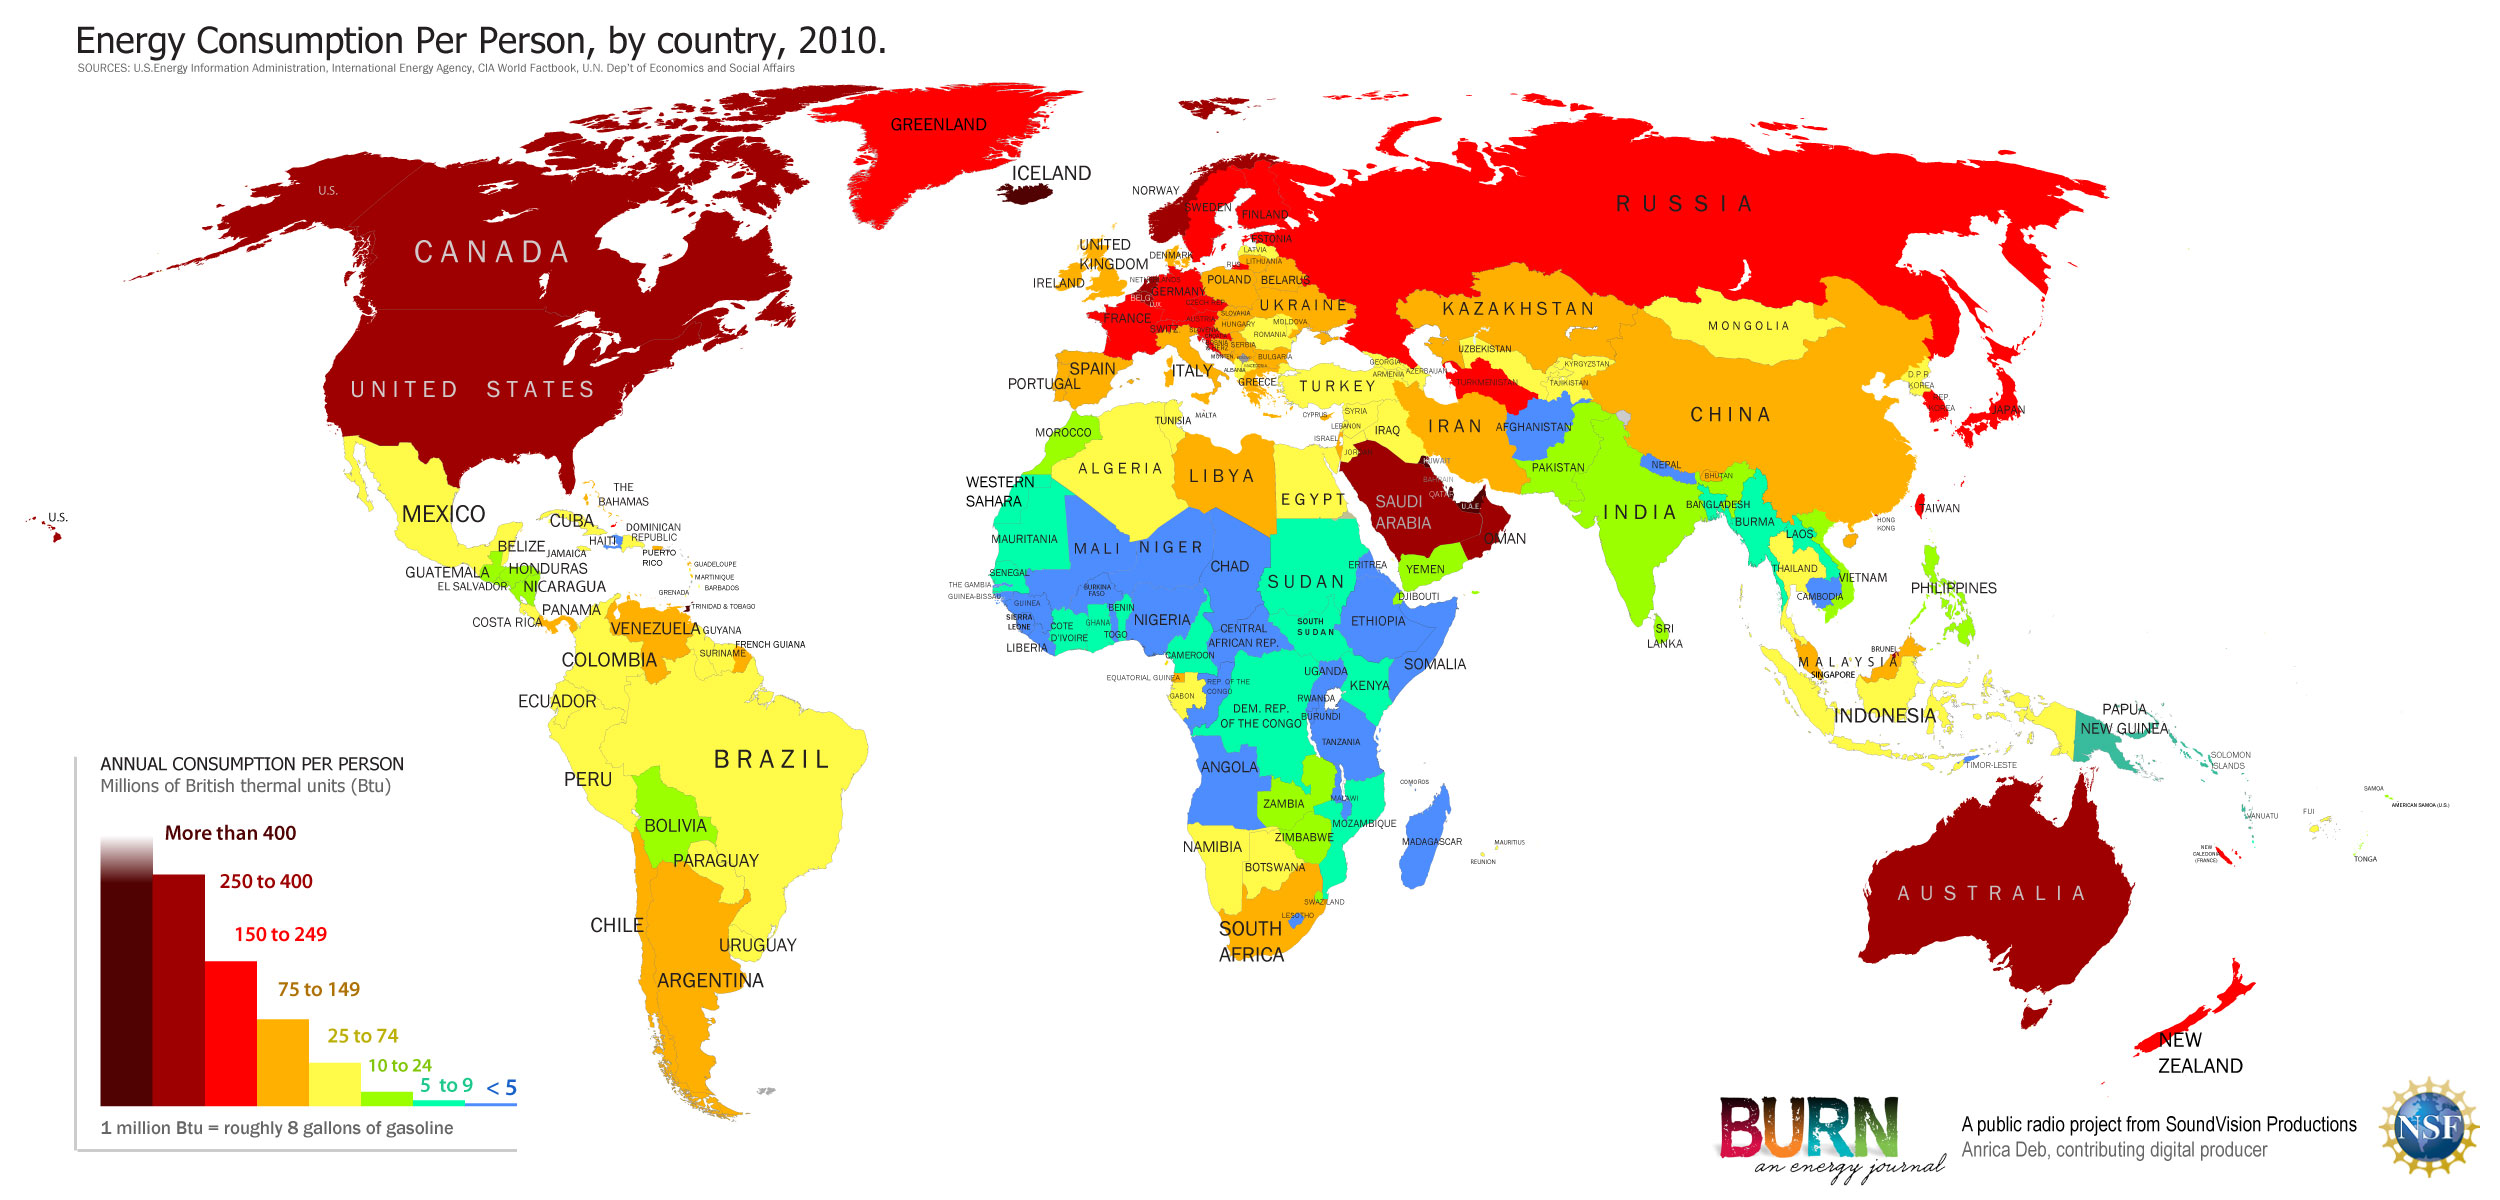 worldmap energy consumption per capita 2010